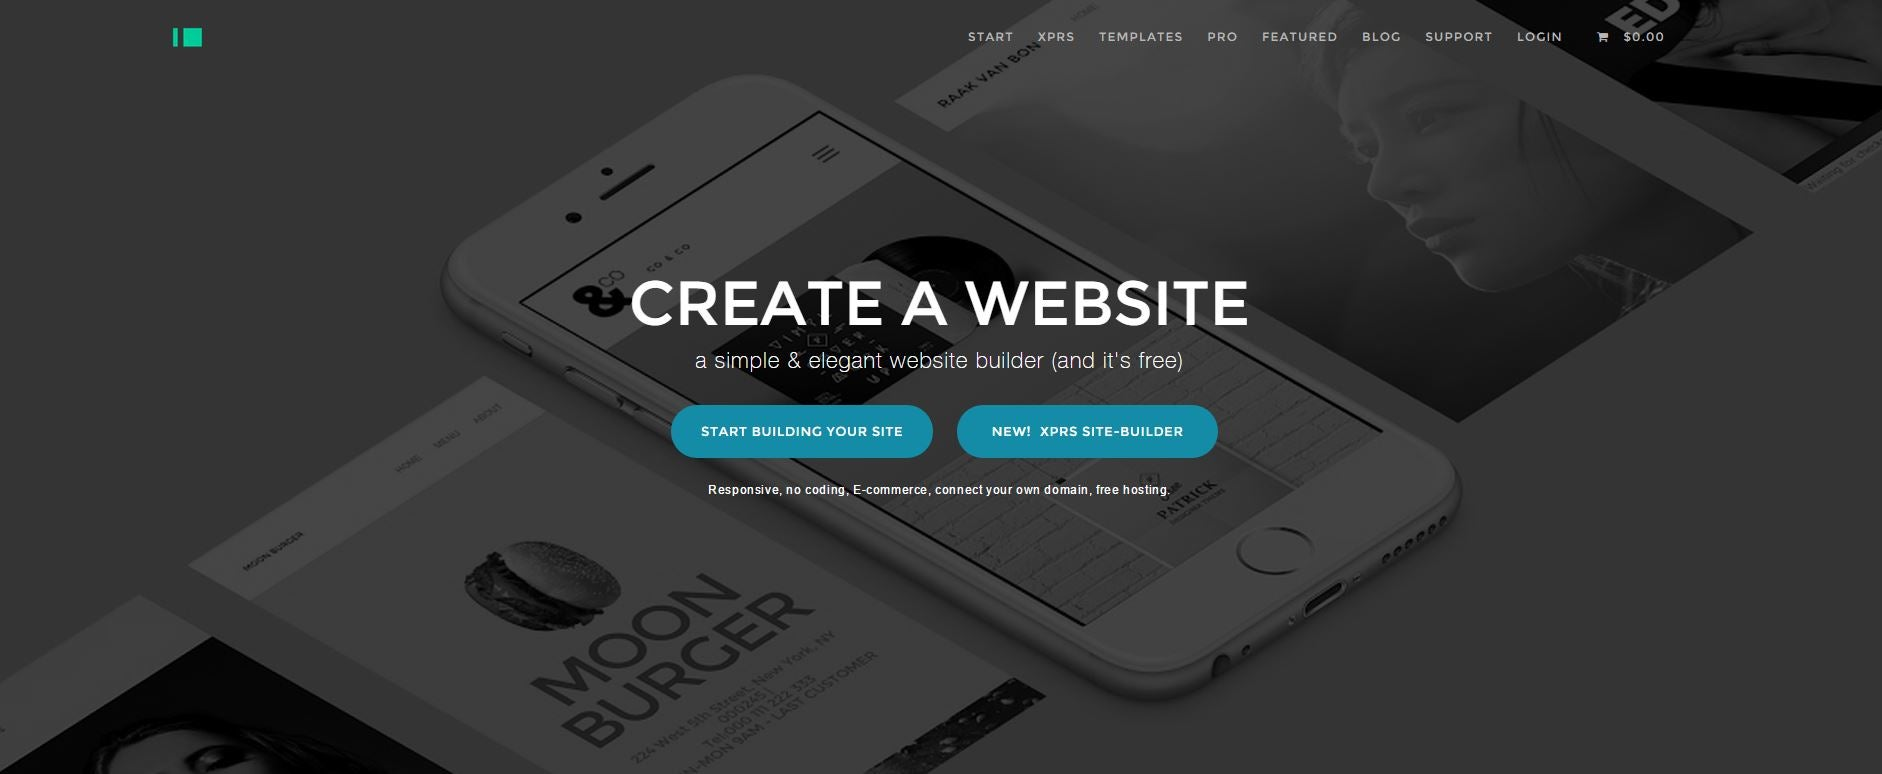 7 best free website builders im creator